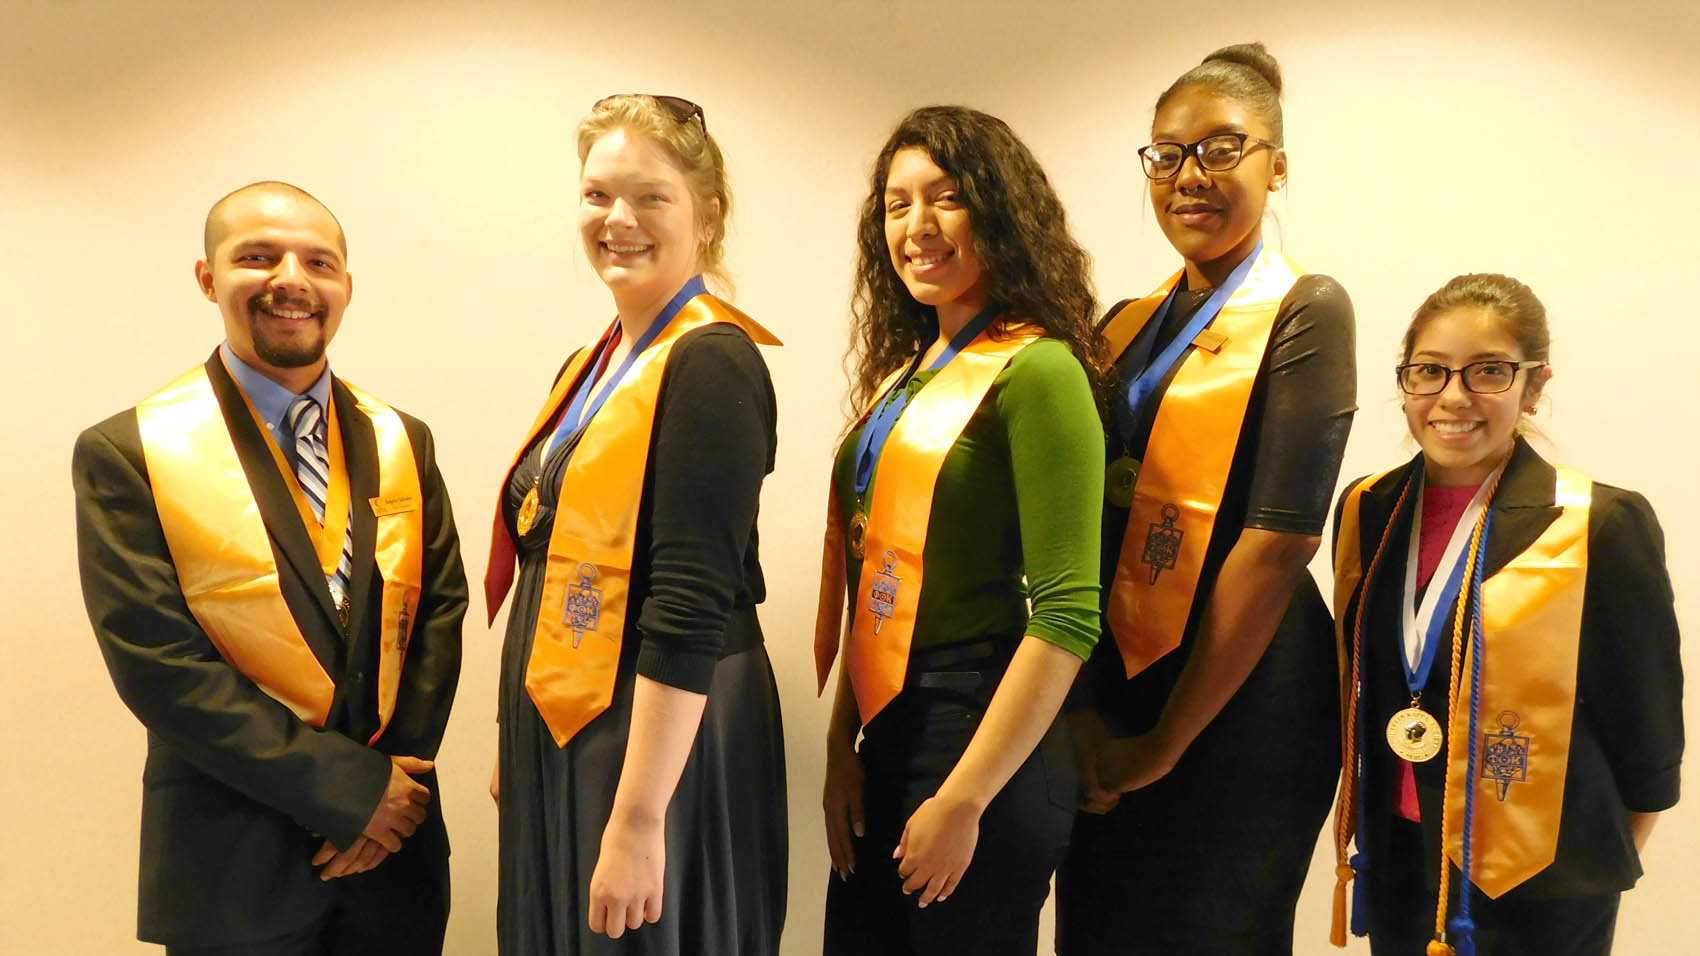 Click to enlarge,  Officers of the Central Carolina Community College Phi Theta Kappa International Honor Society are pictured, left to right: Rogelio Salvador, President; Lauren Vann, Vice President; Janely Rivera, Public Relations Secretary; Yolanda Leach, Recording Secretary; and PTK Regional Vice President Teresa Echeverria.